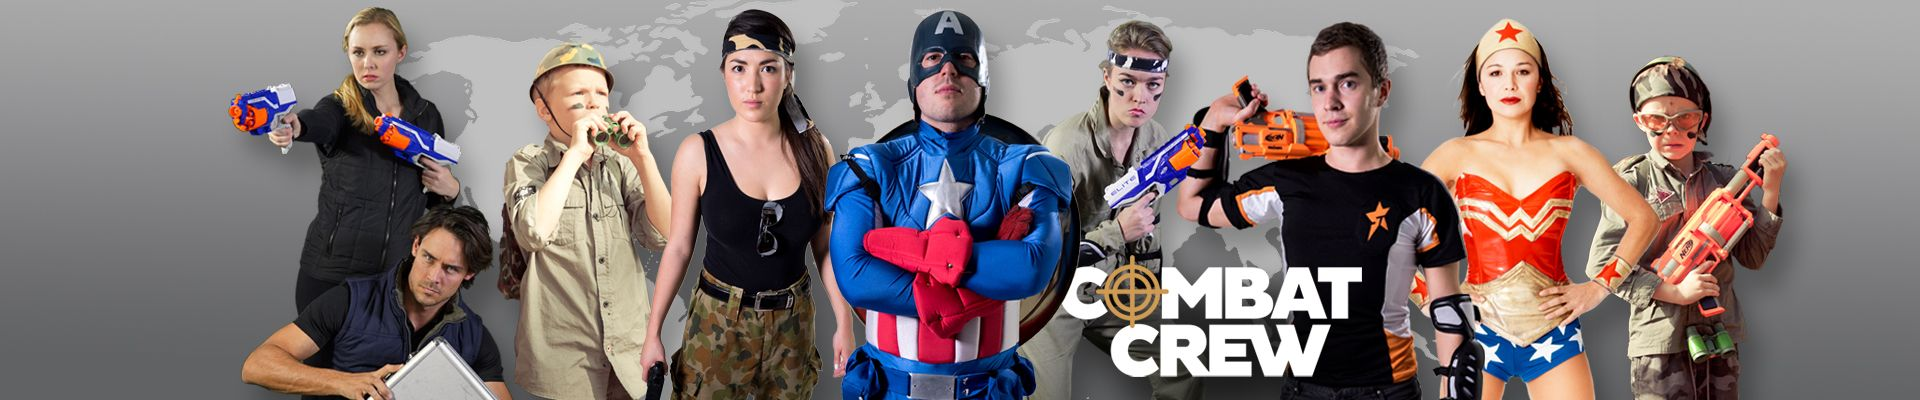 image NERF War Party Sydney Combat Crew Superheroes Inc